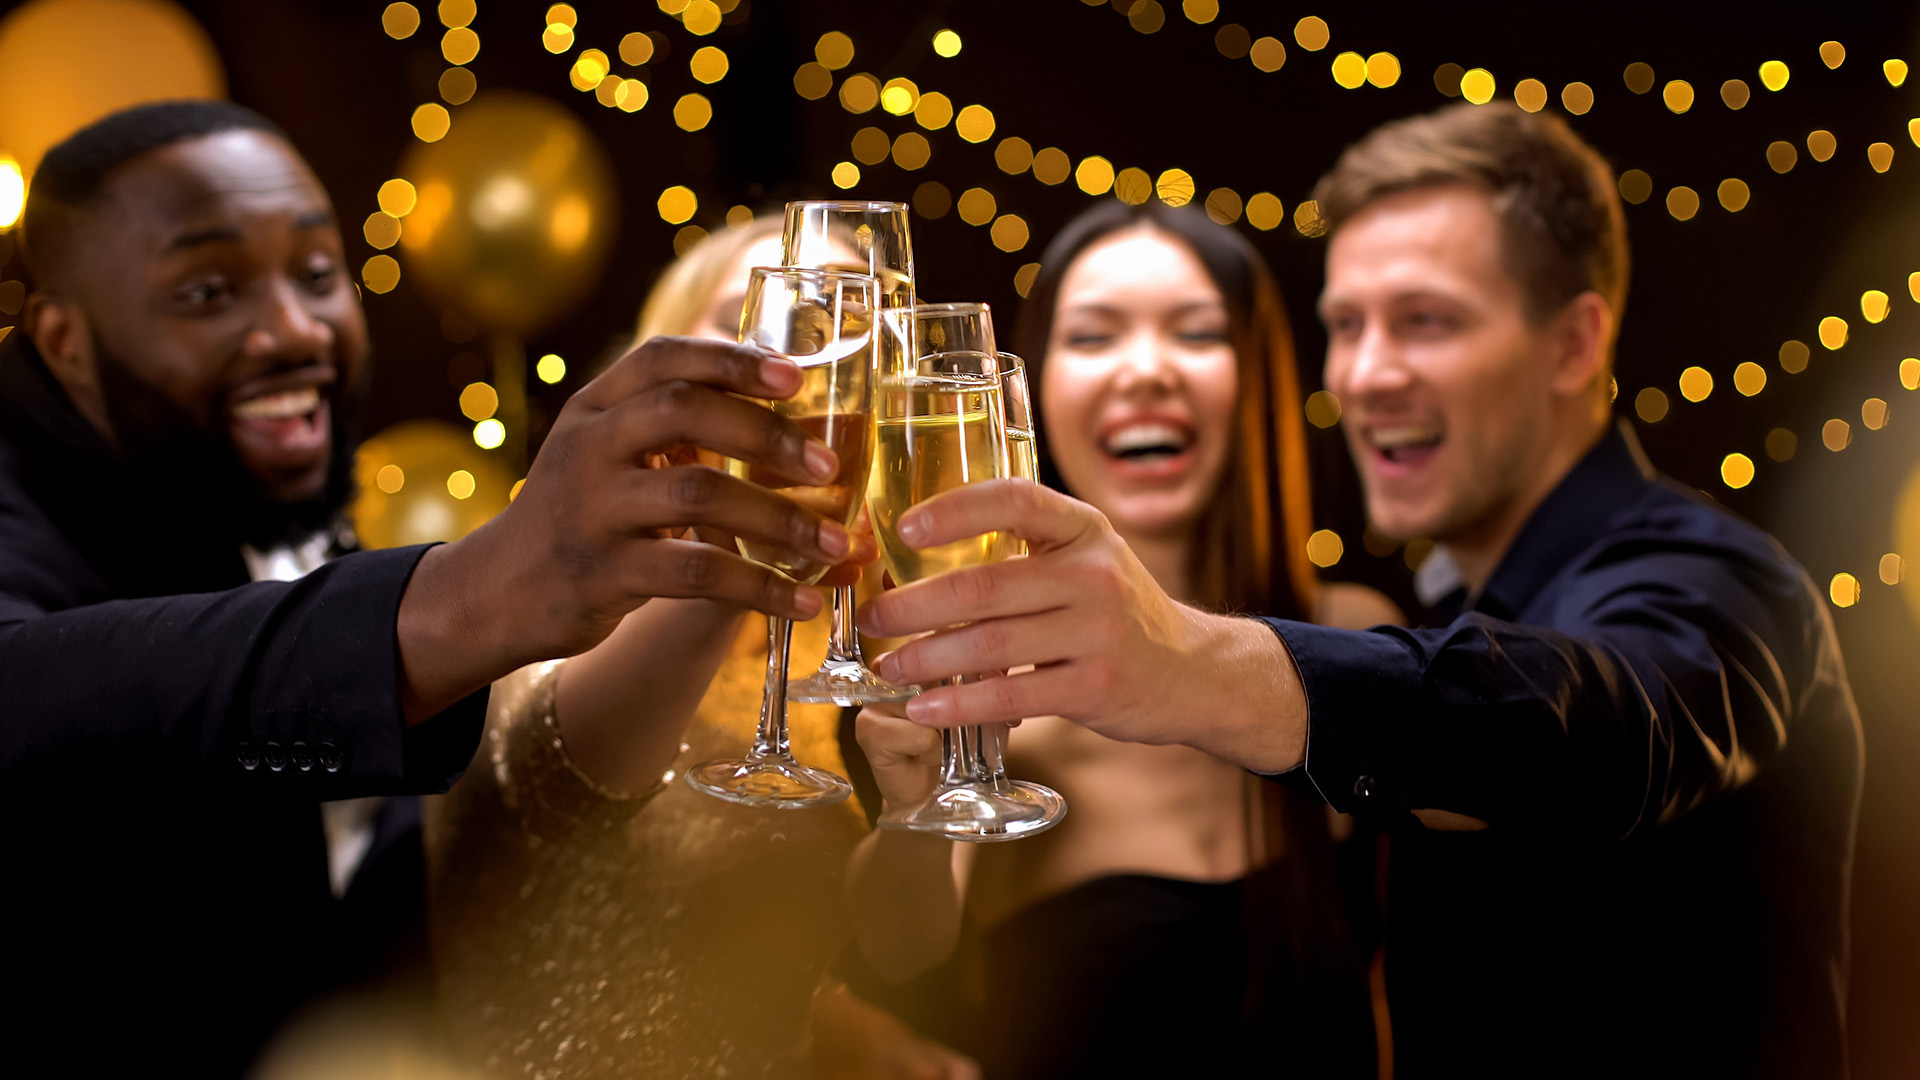 Photo of four friends celebrating with champagne